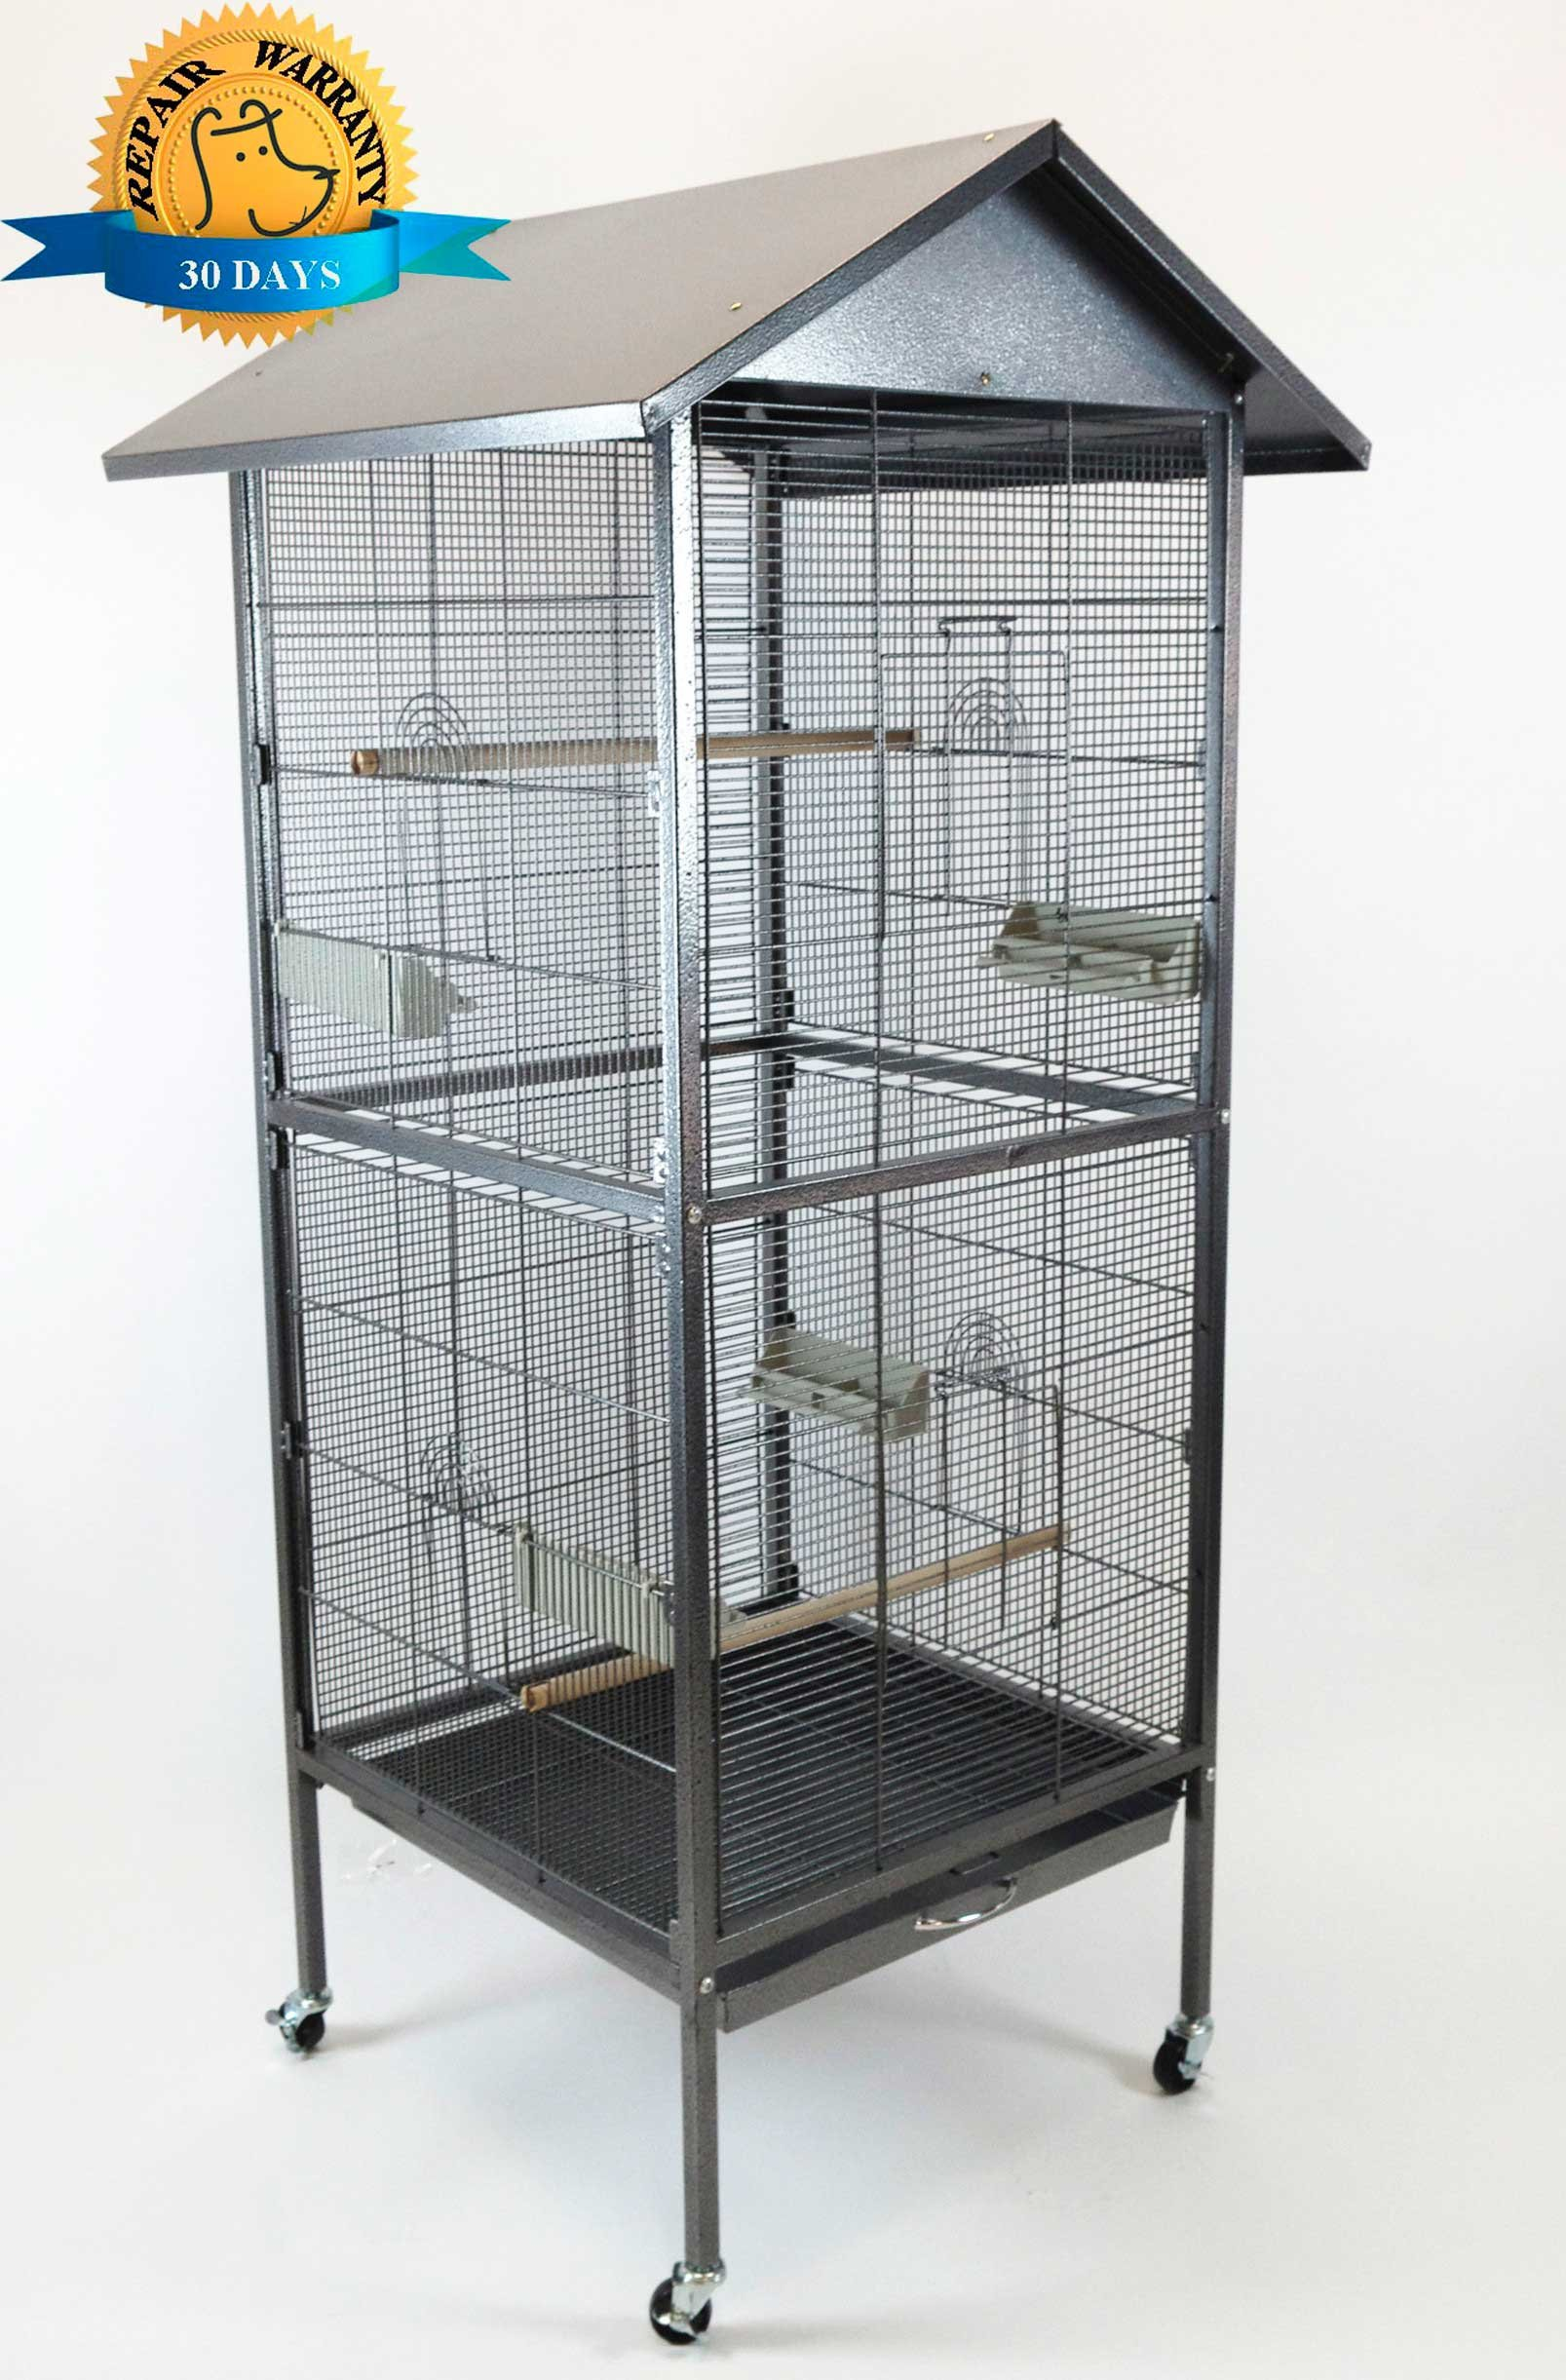 Homey Pet - 65'' House Shape Bird Cockatoo Macaw Cage with Roof Casters, Feed Door, Perch, Metal Tray. Size: 23 ½'' (W) x 23 ½'' (L) x 54 ¼' (H). Item ID:PR-1610-BSV by Homey Pet